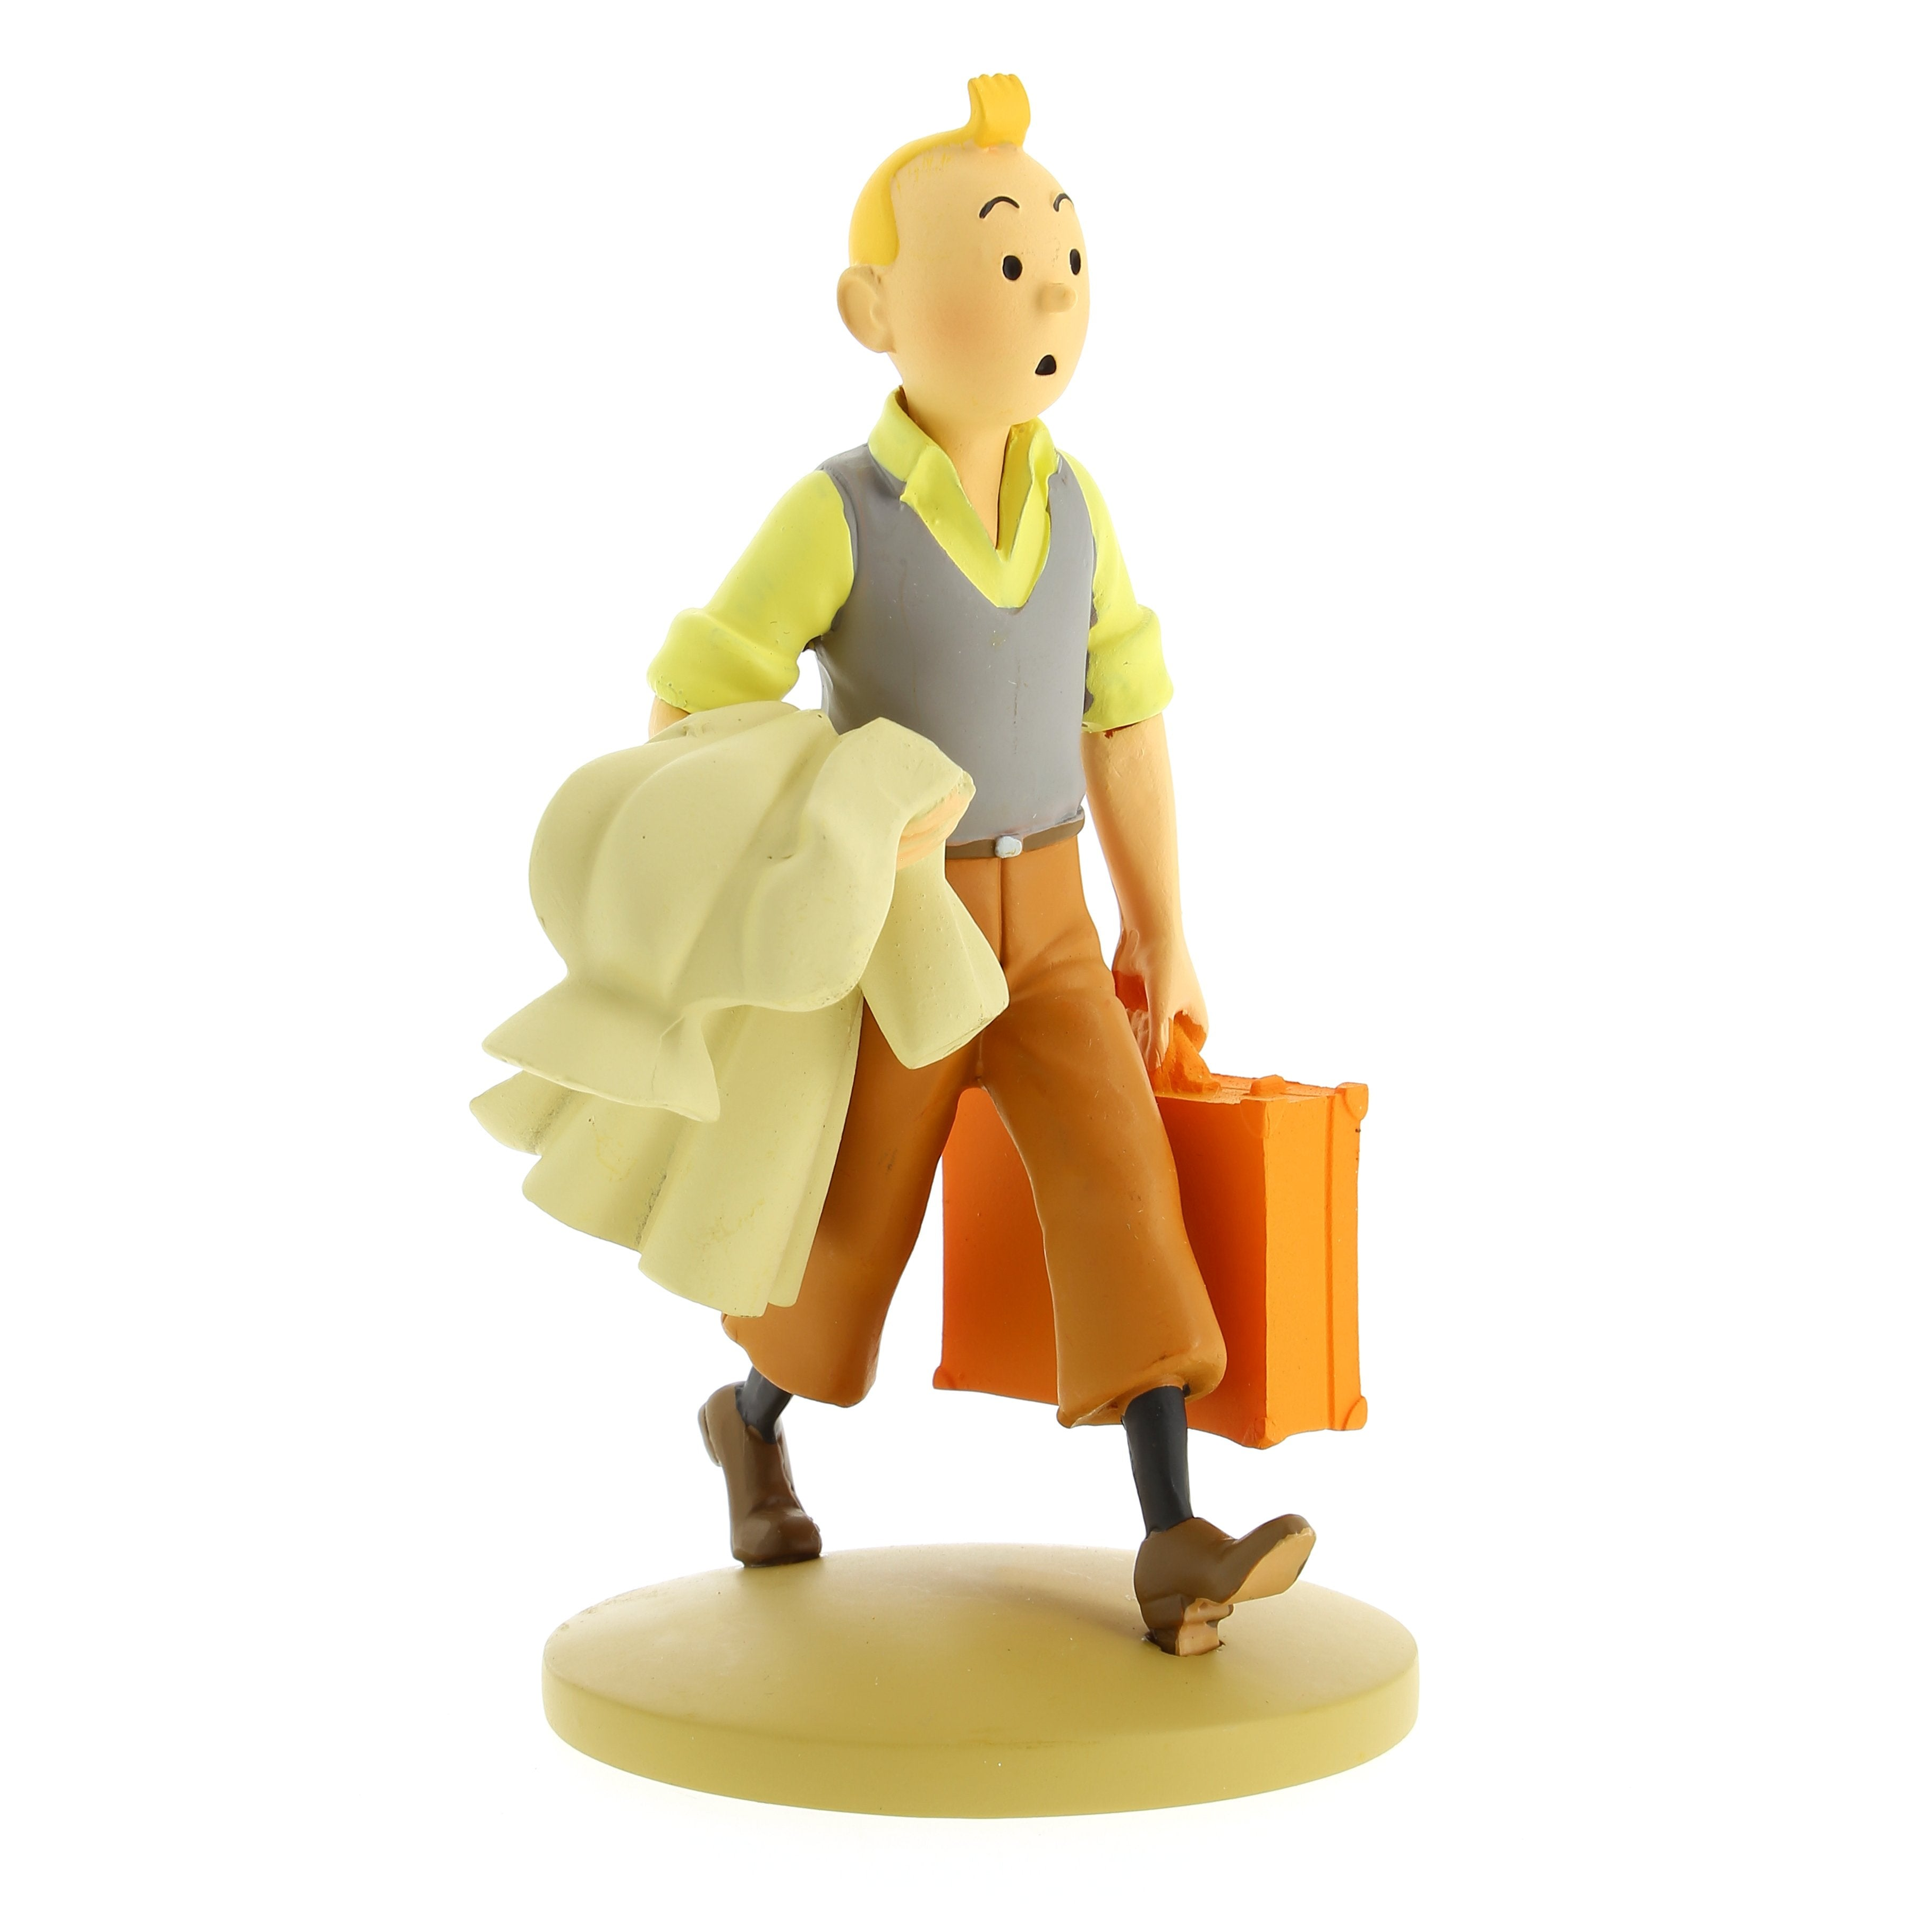 RESIN FIGURINE - TINTIN & SNOWY ON THE ROAD